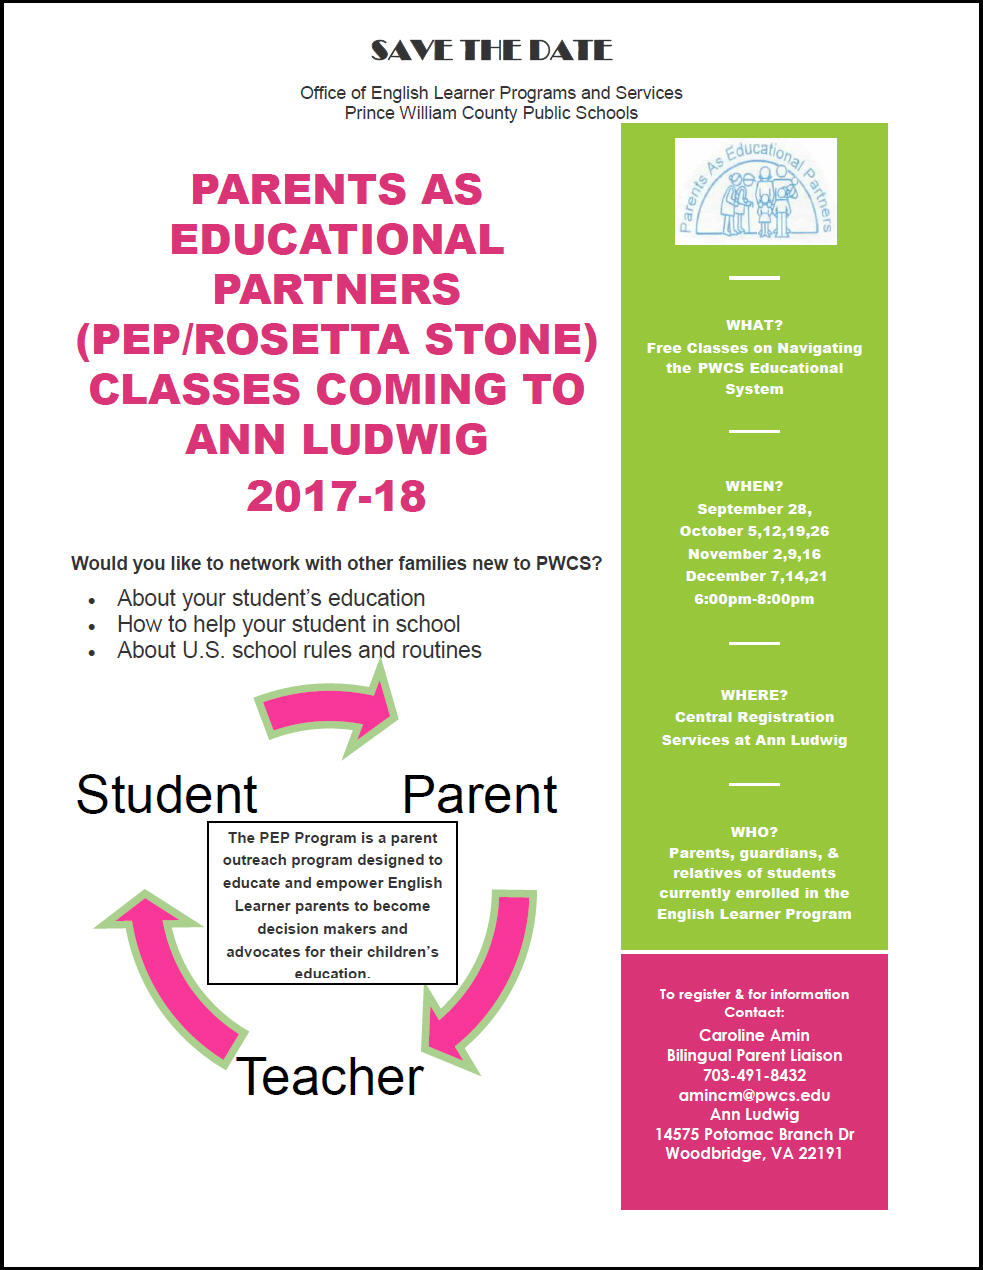 PARENTS AS EDUCATIONAL PARTNERS (PEP/ROSETTA STONE) CLASSES COMING TO ANN LUDWIG 2017-18